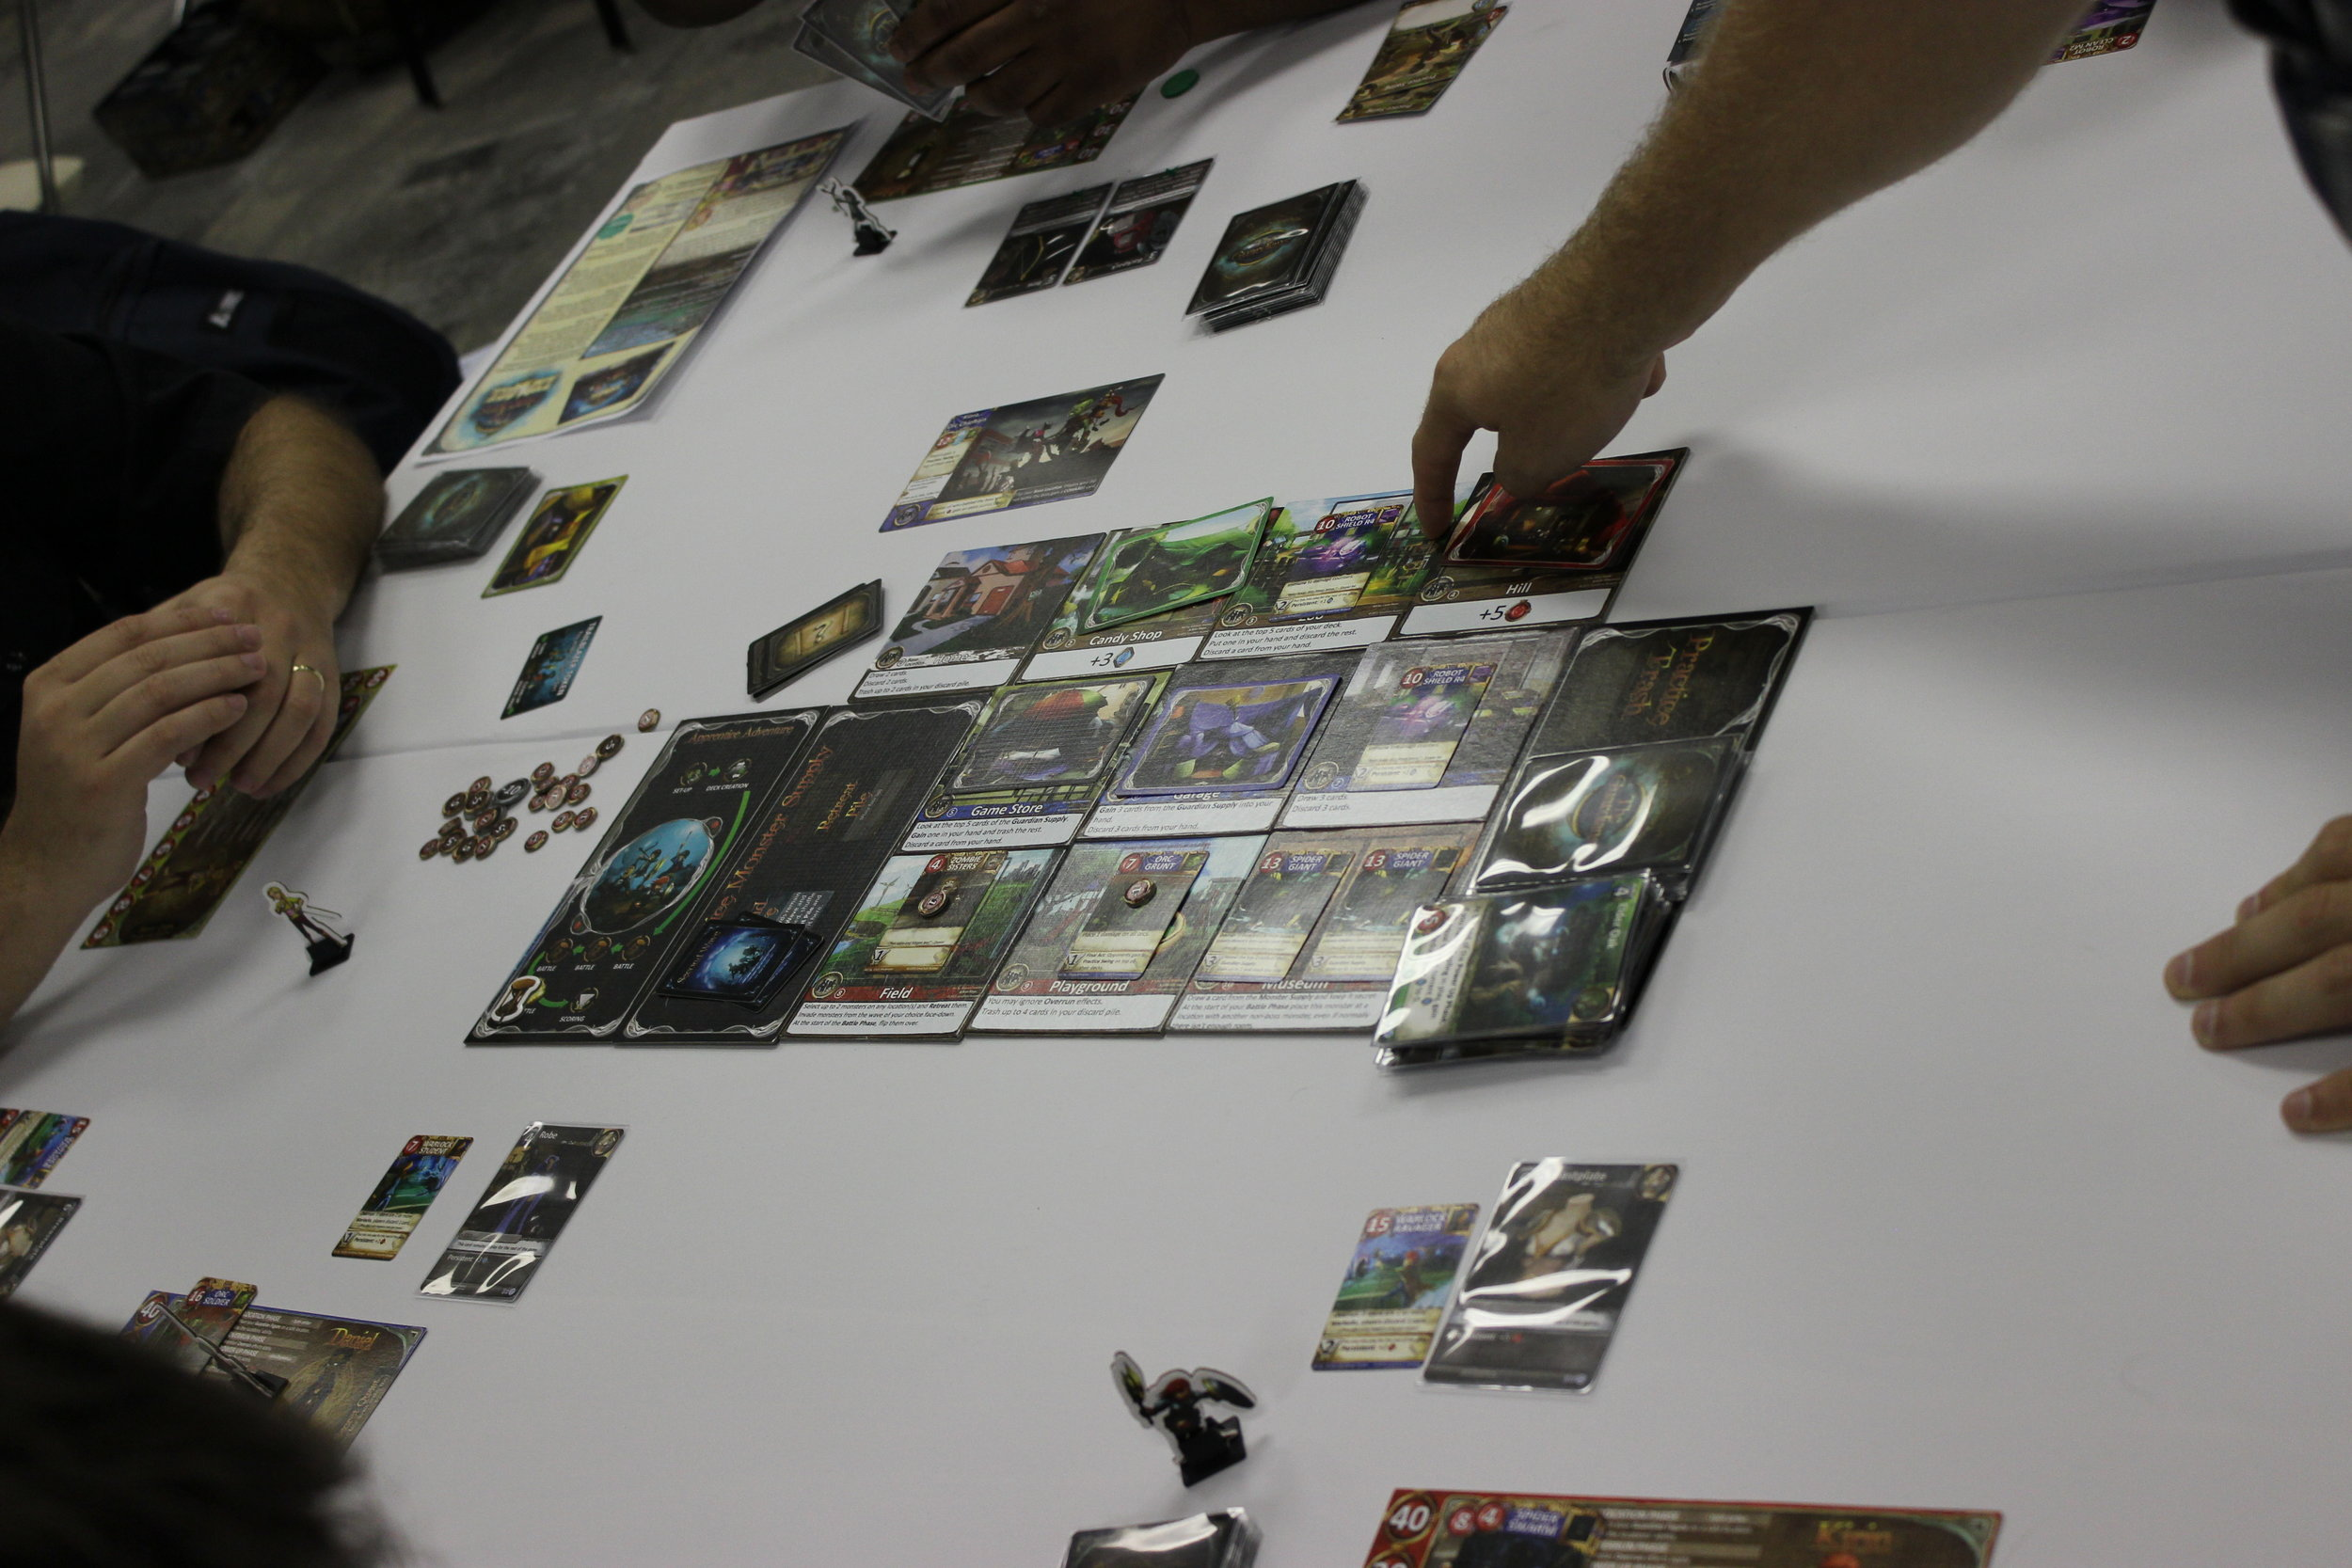 The Guardians being played